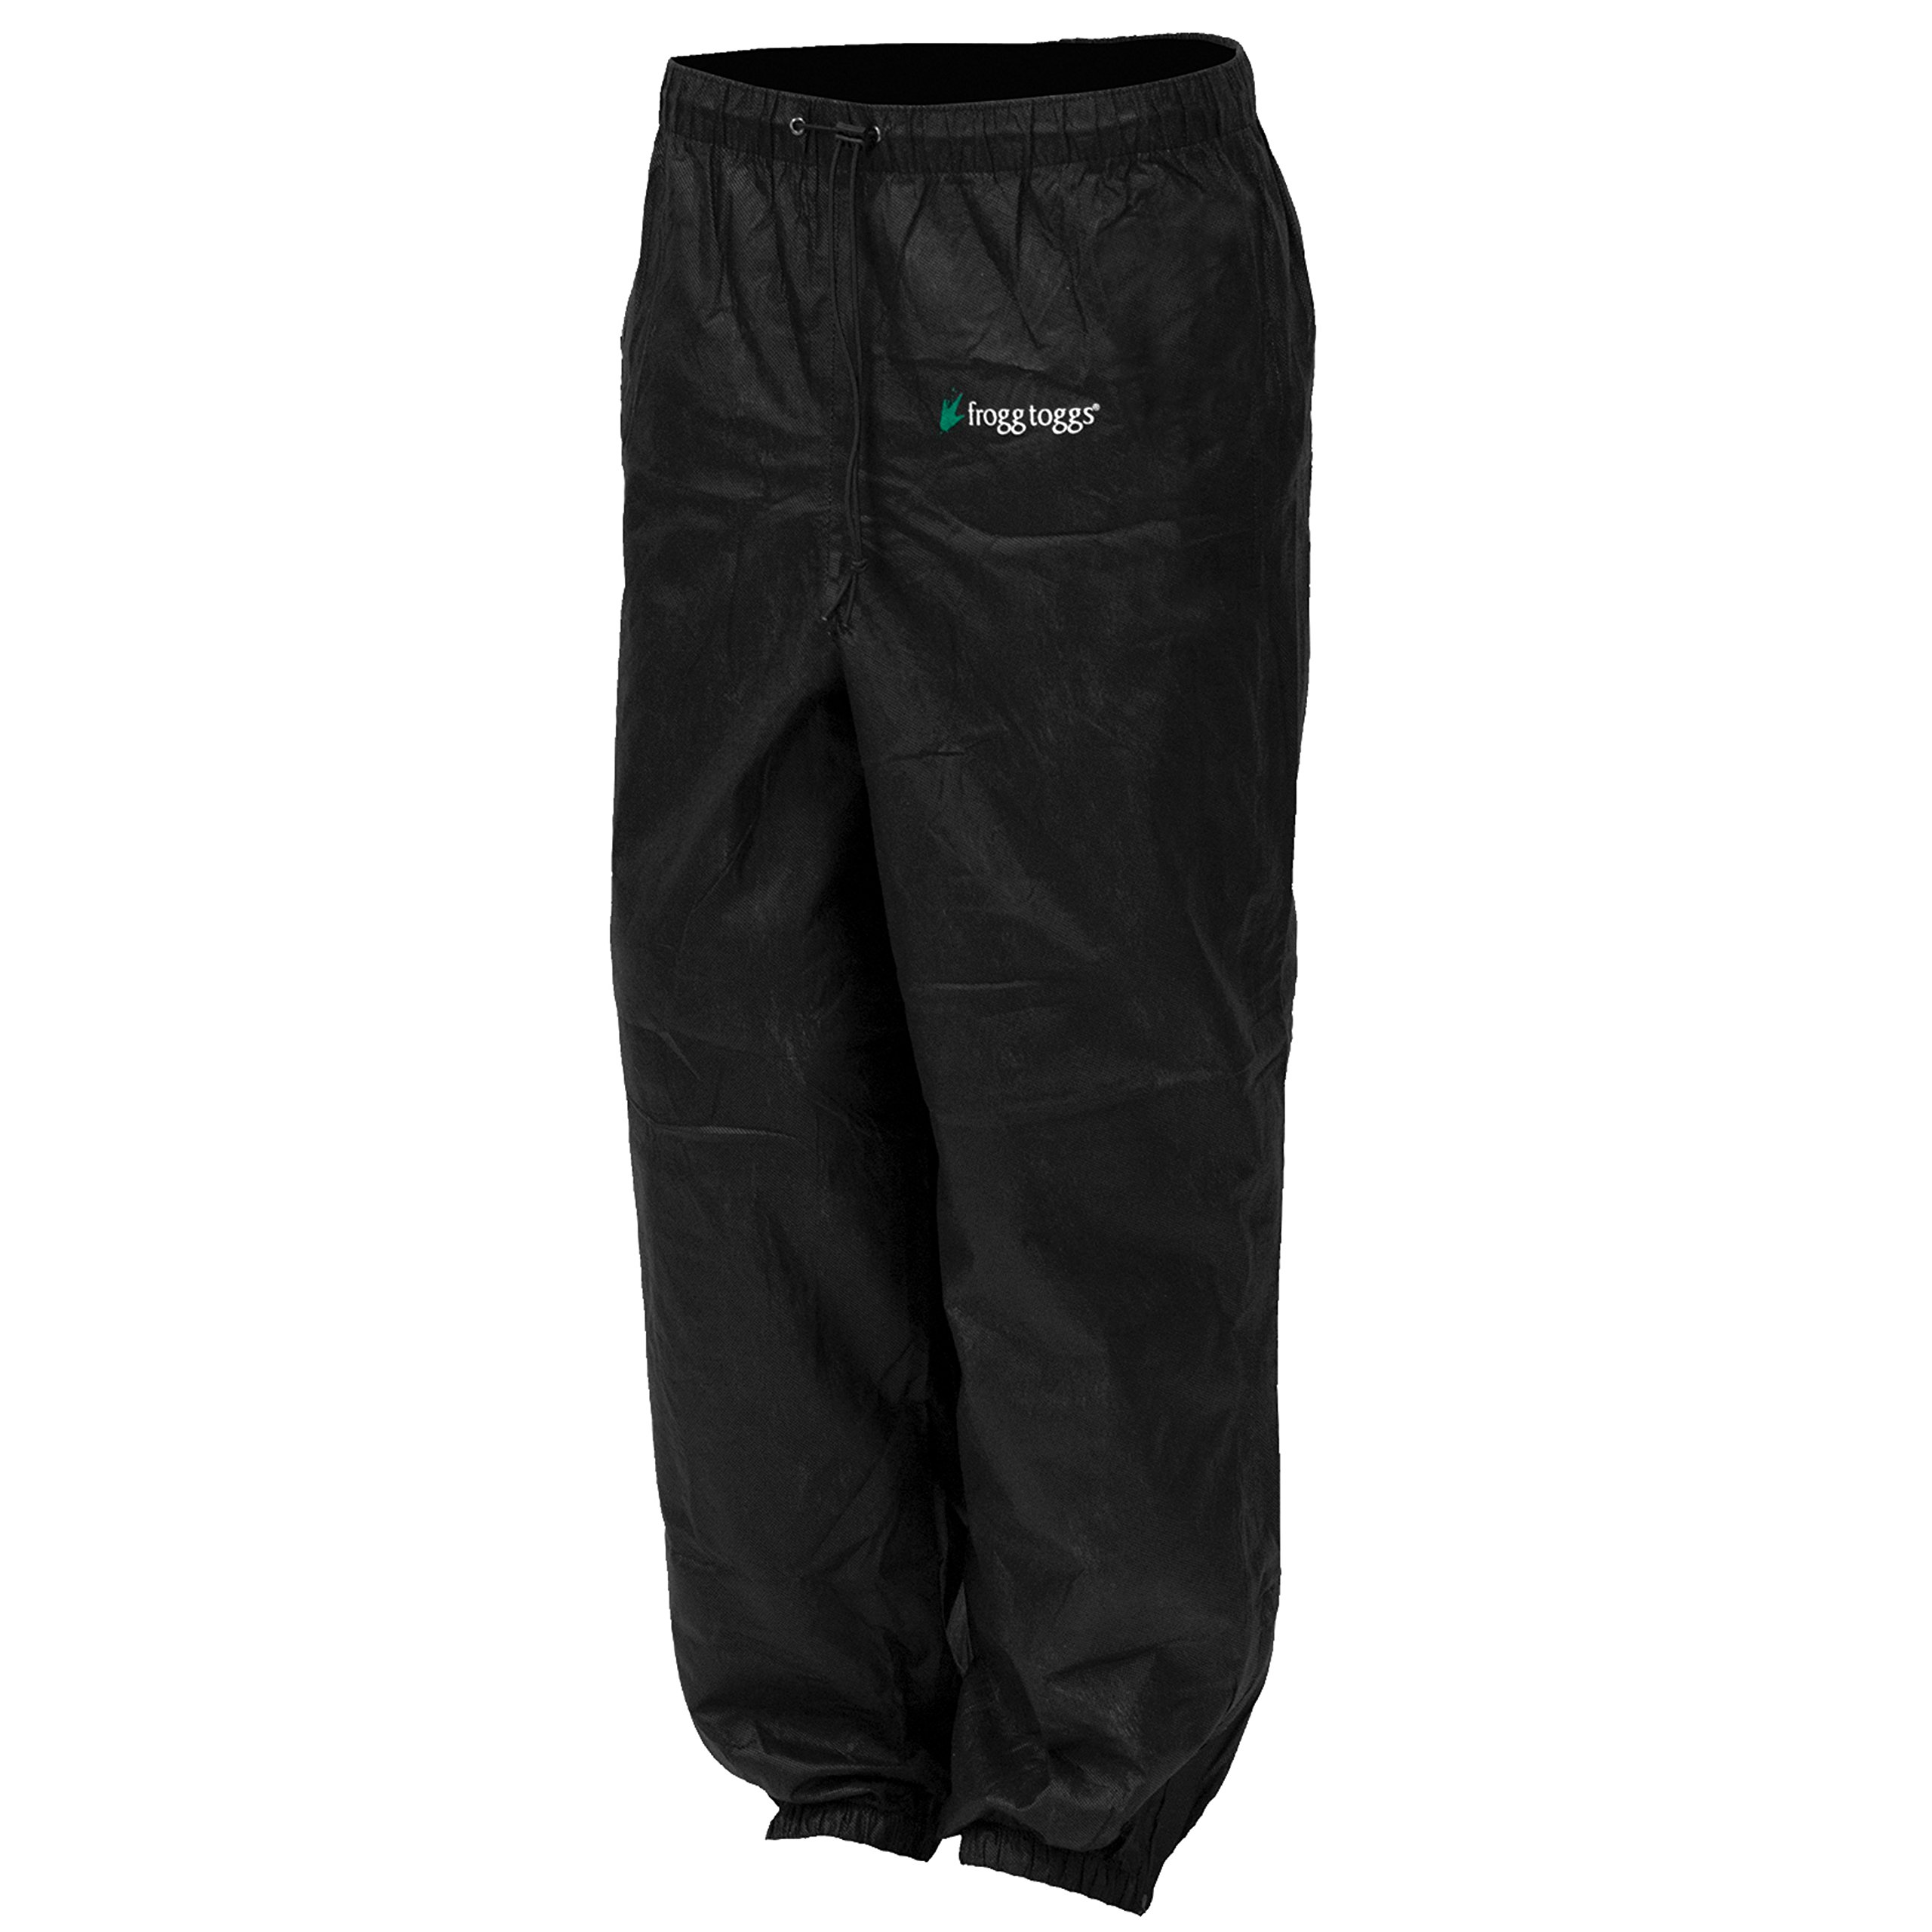 Frogg Toggs Women's Pro Action Pant, Black, Medium